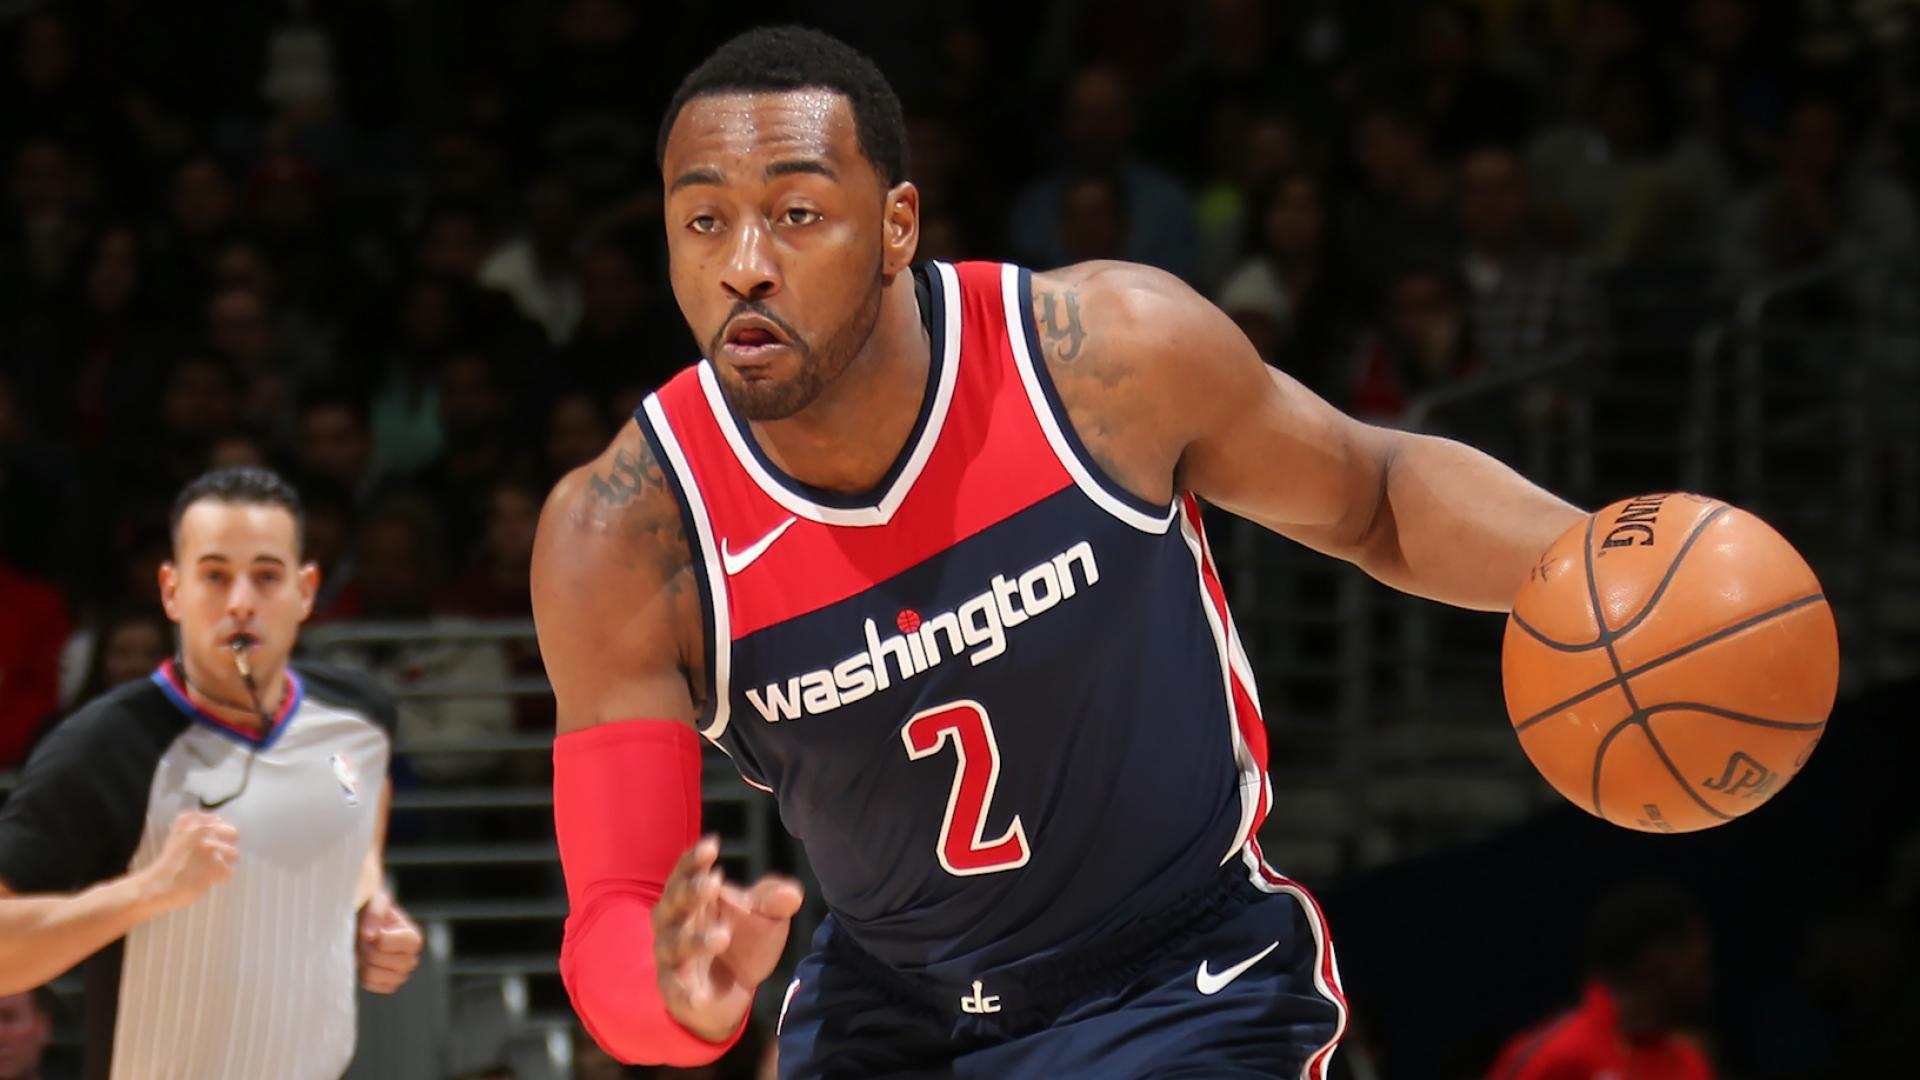 John Wall out 6-8 weeks with knee injury